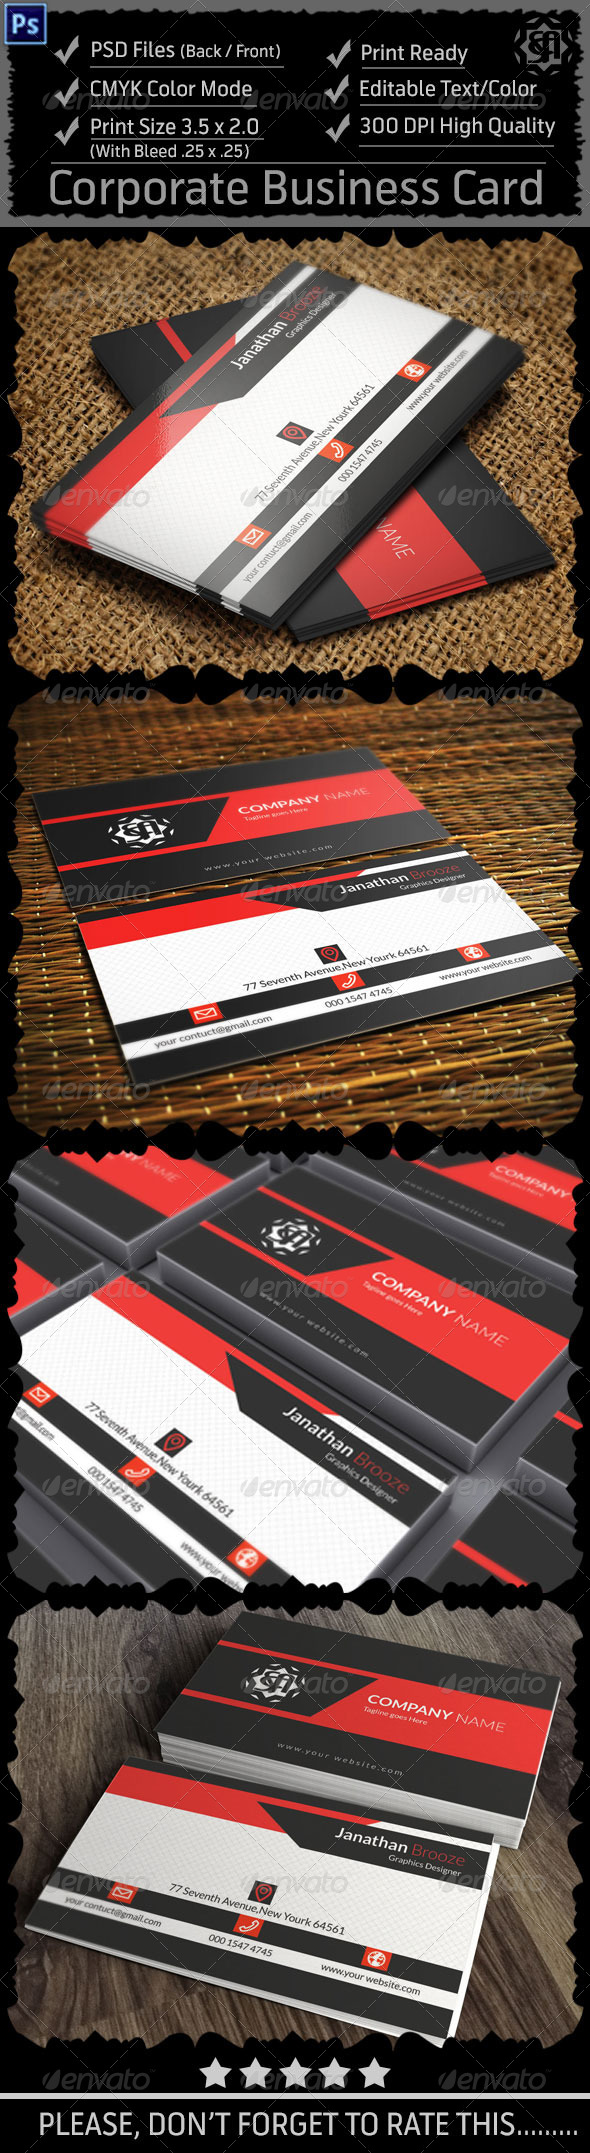 GraphicRiver Corporate Business Card Vol 7 8497952